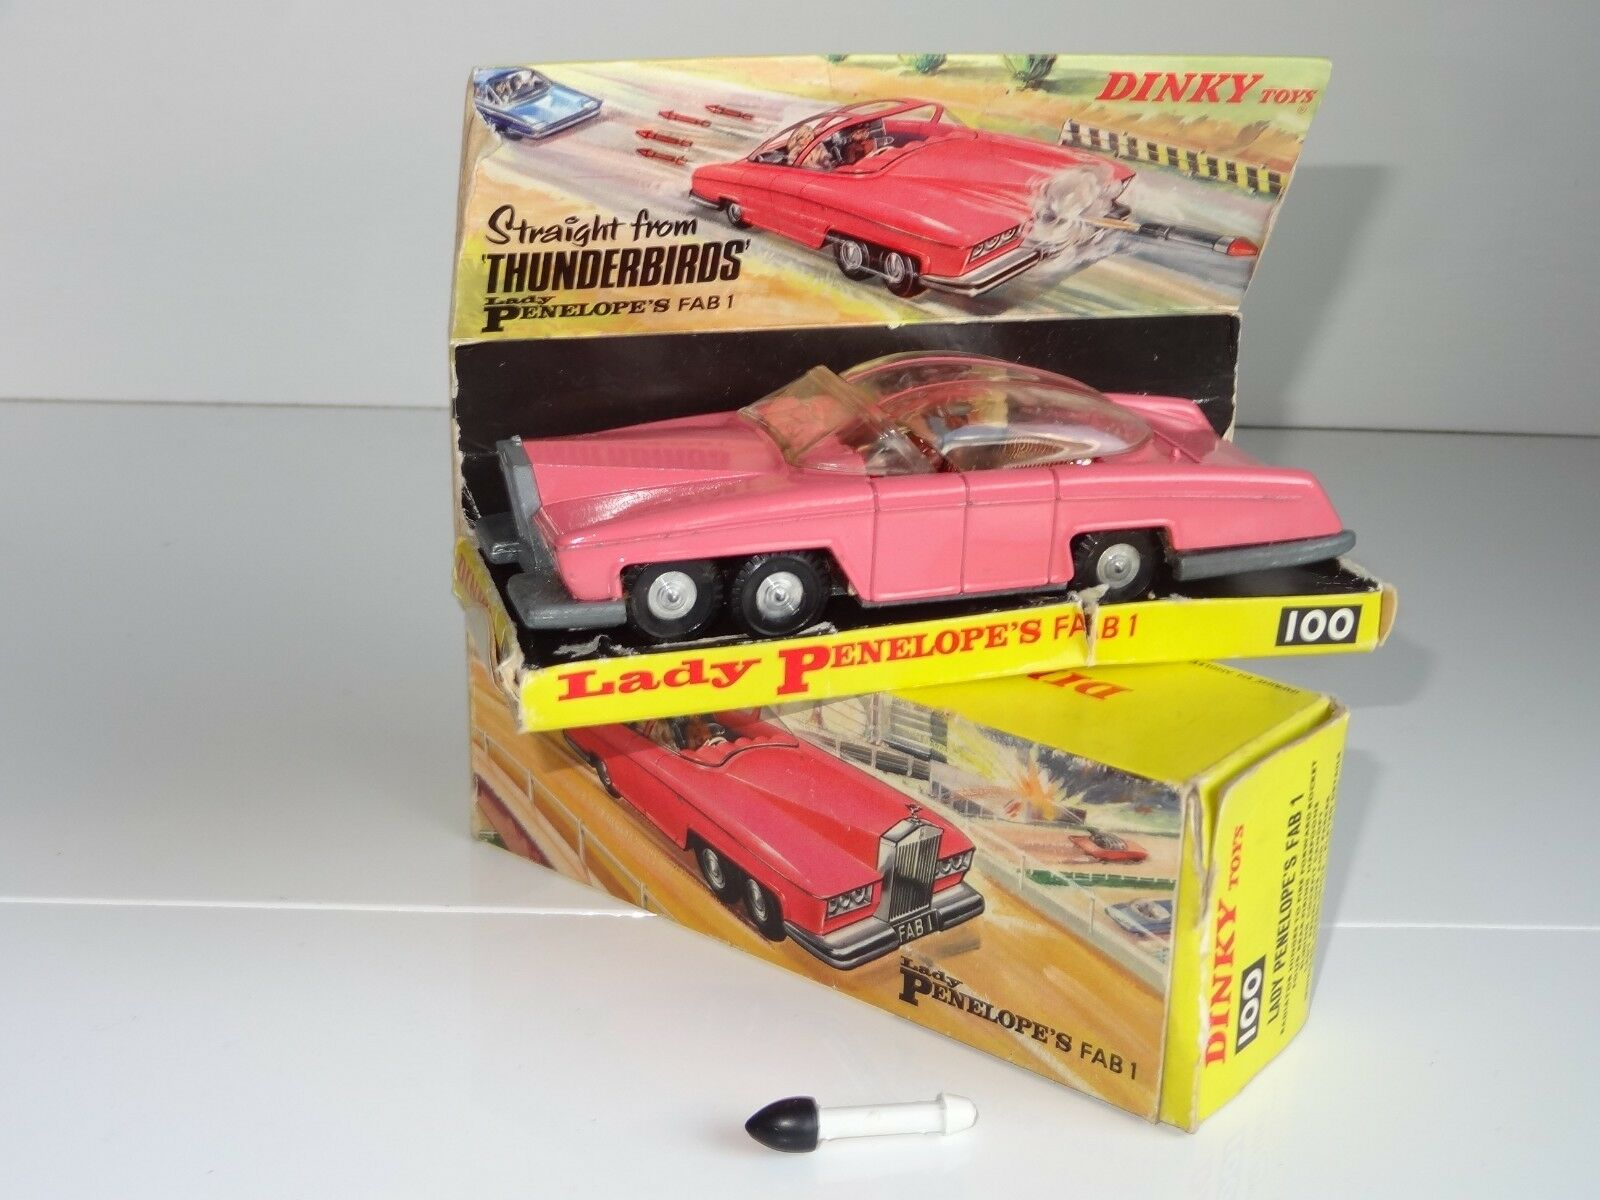 (W) dinky LADY PENELOPE FAB 1  - 100 with missile